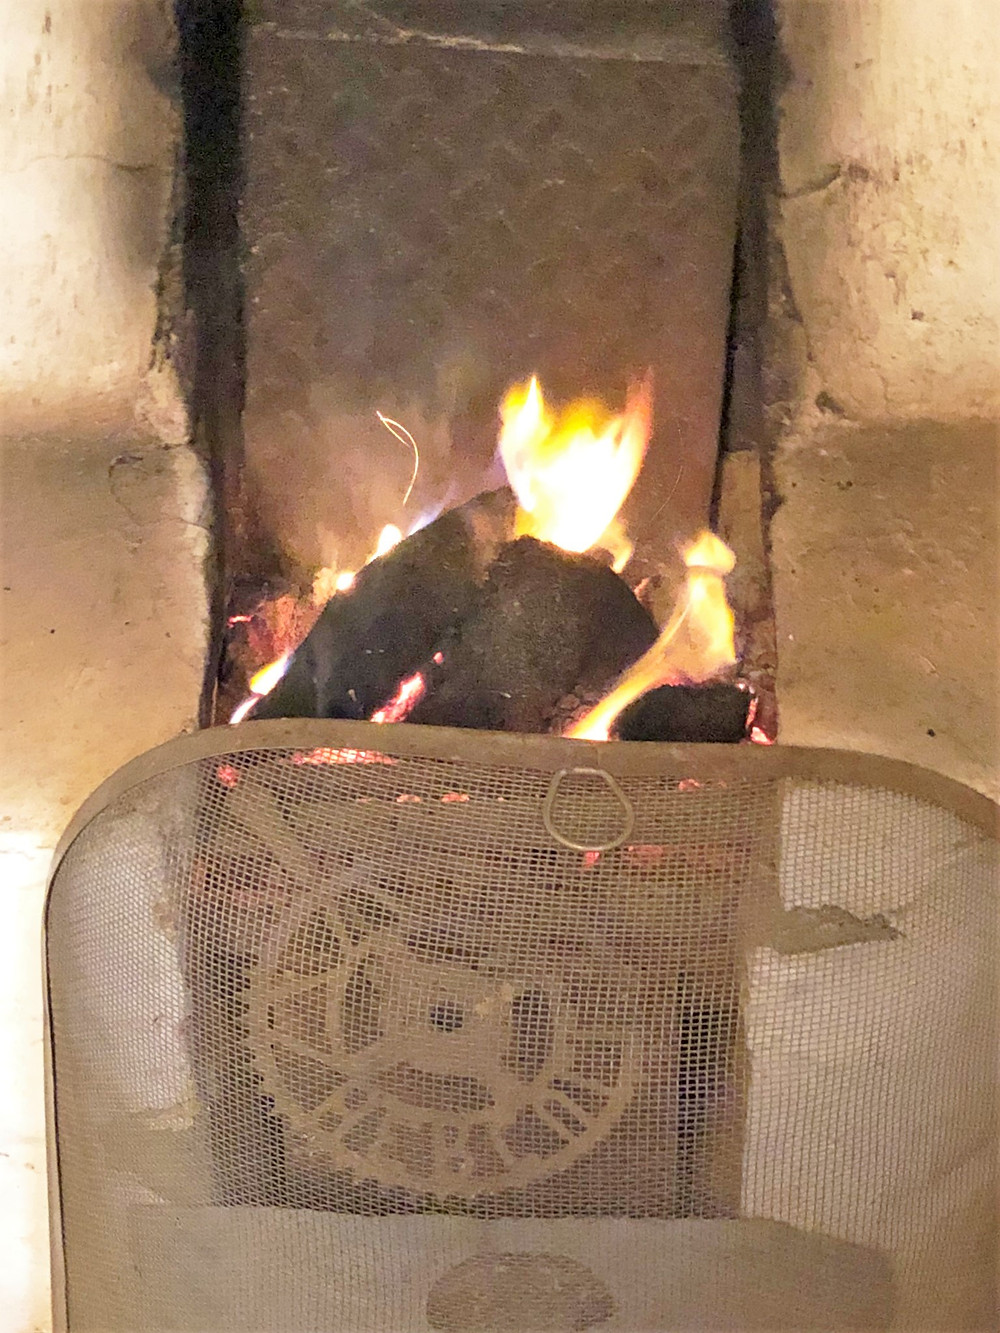 A fire in the small central hearth kept the Gearrannan Blackhouses warm